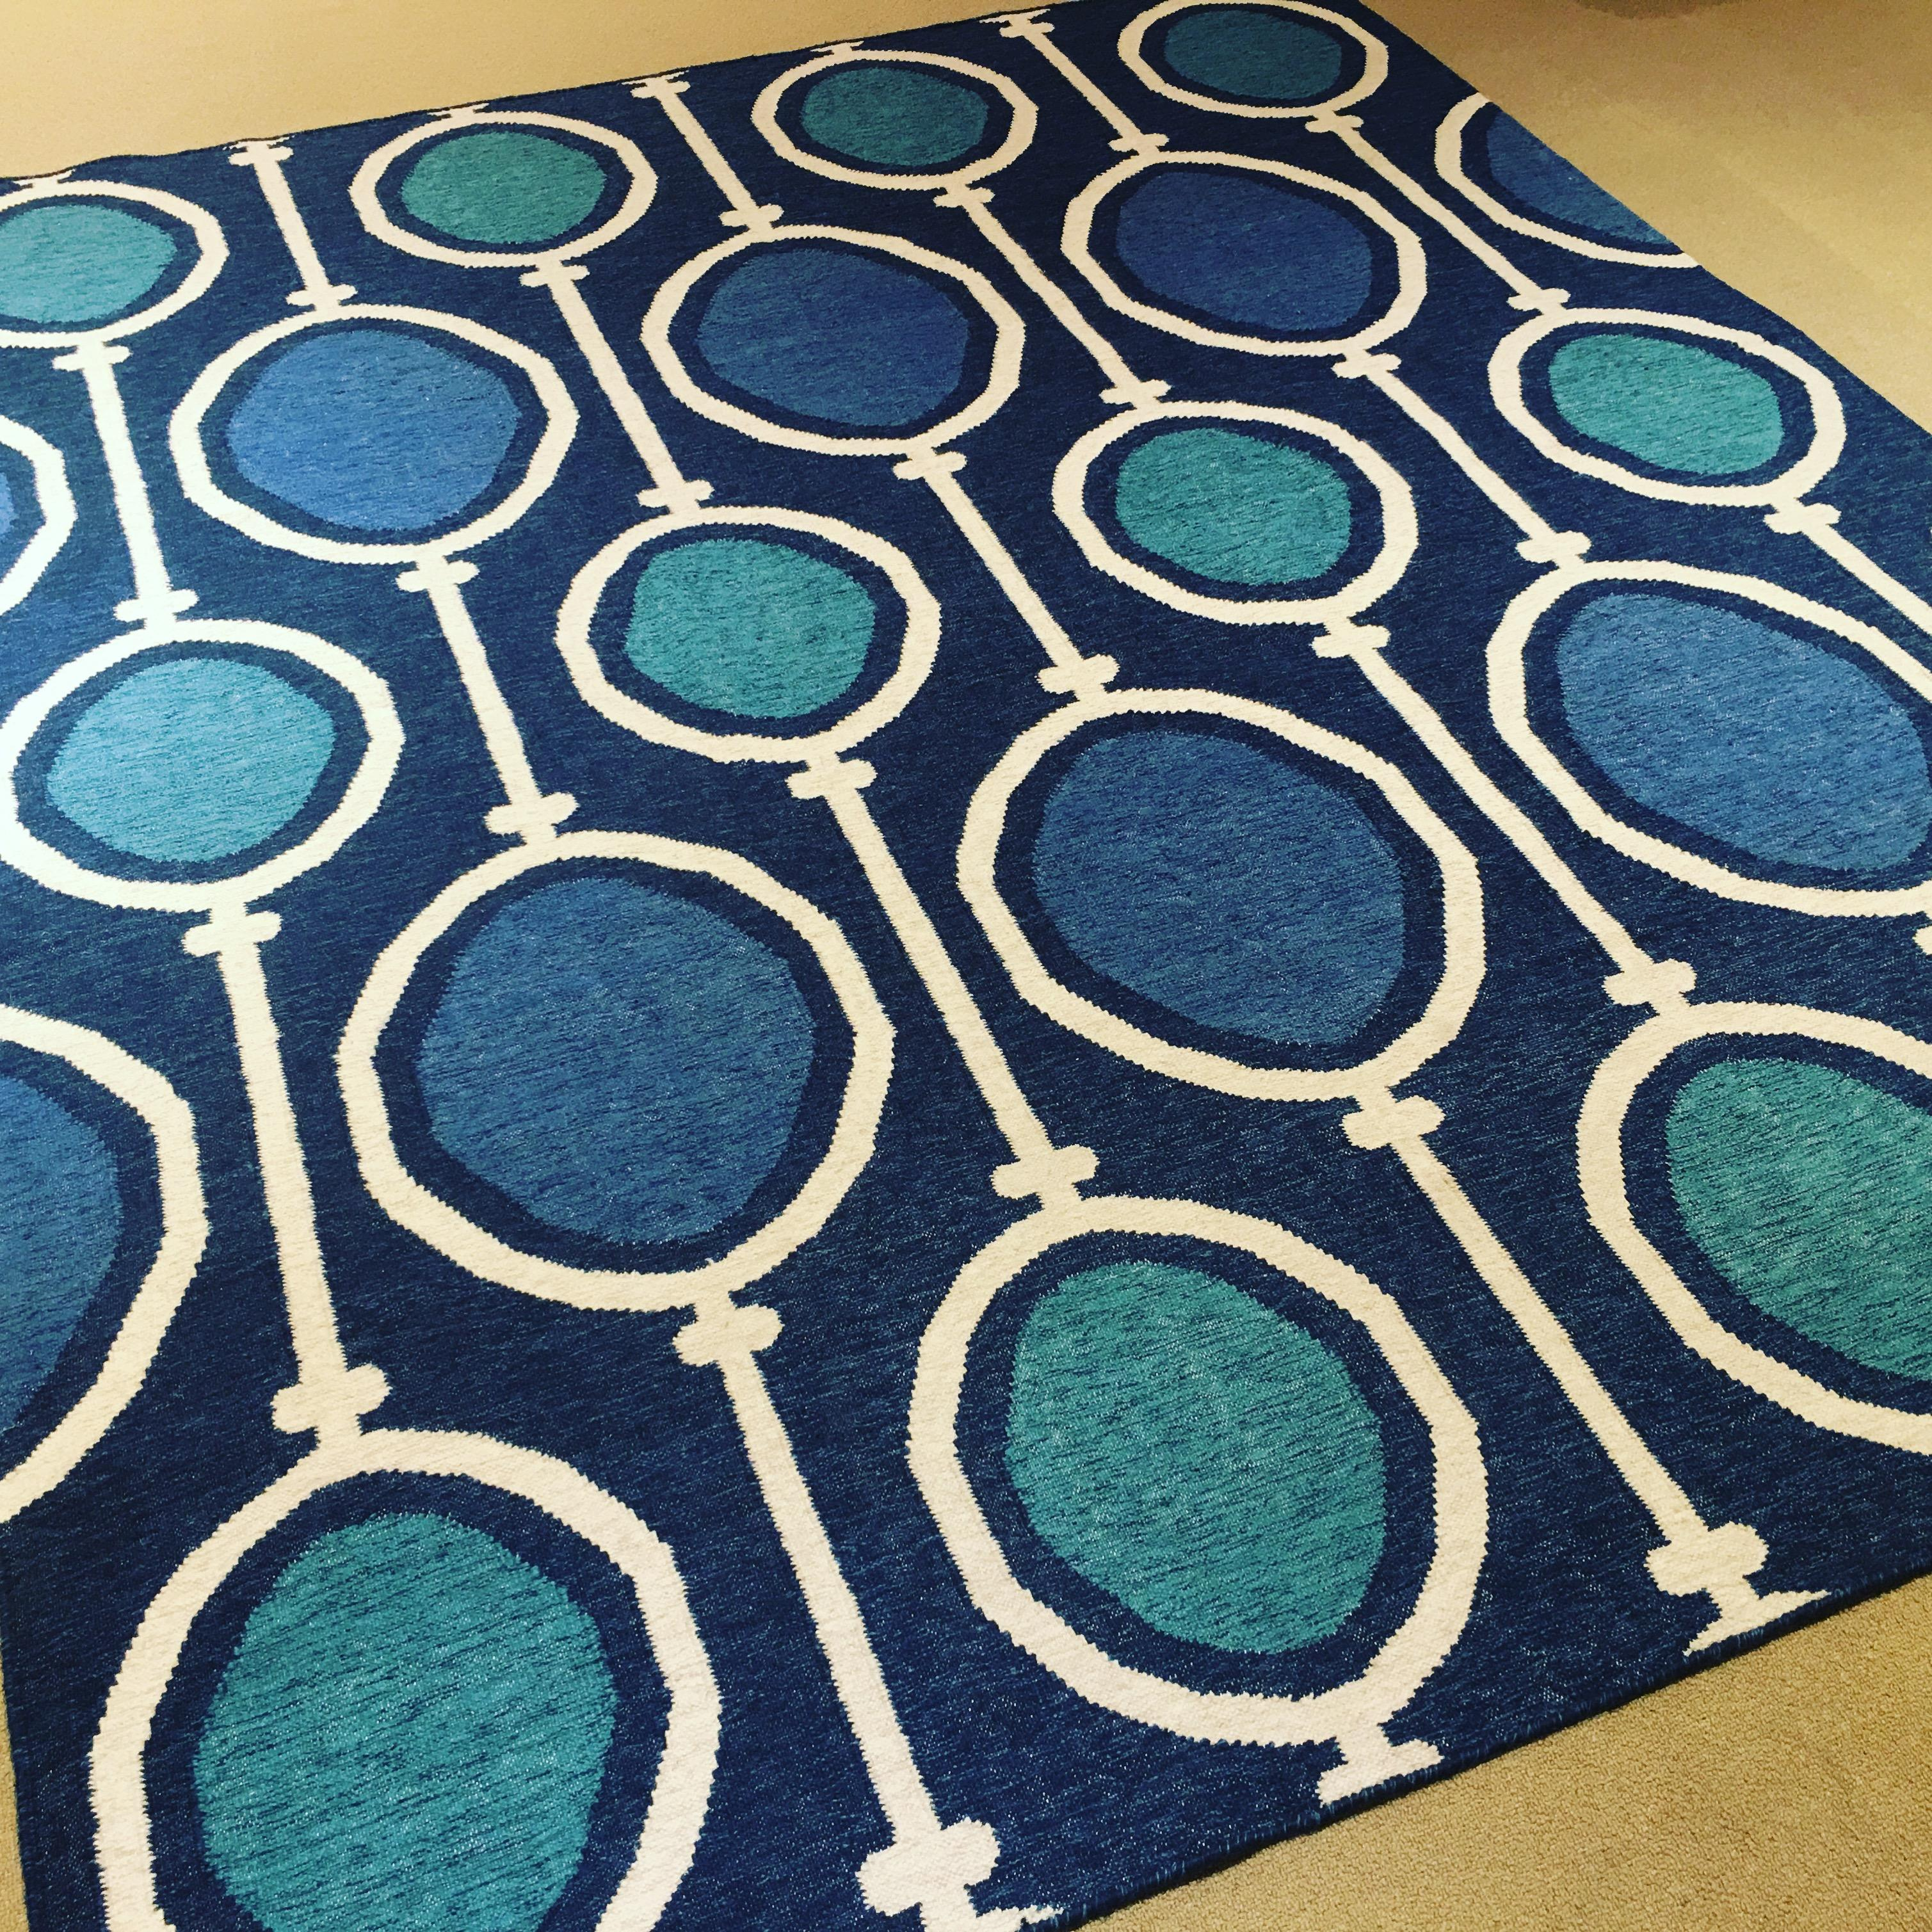 OC Rugs Restoration - Irvine, CA - Carpet & Upholstery Cleaning